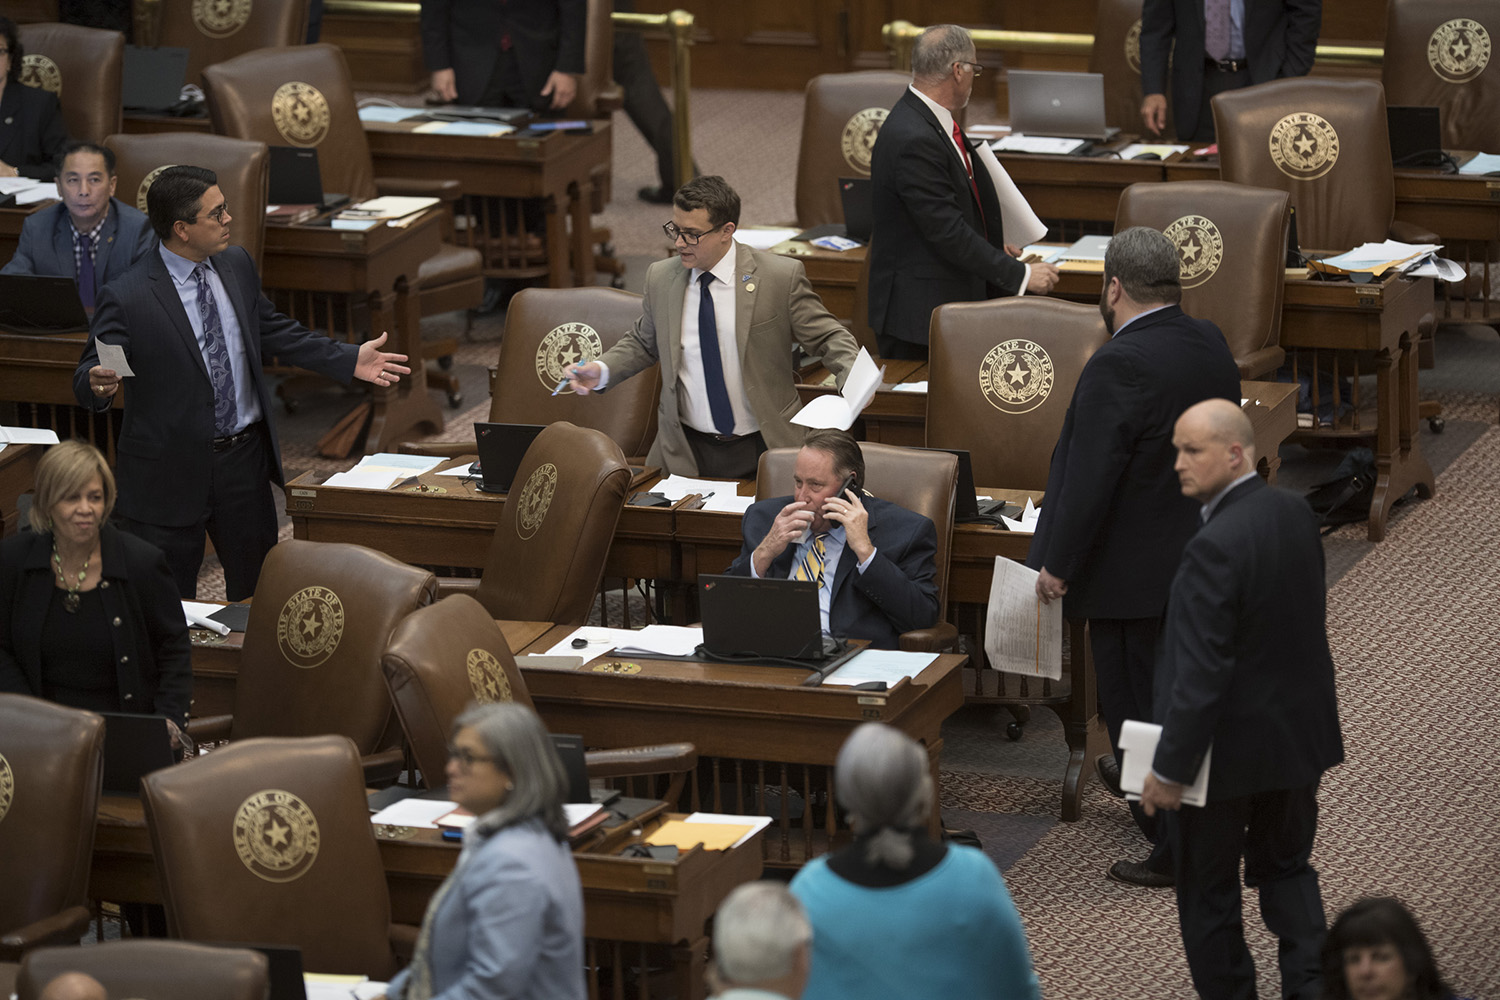 9:50 p.m. Arguments break out on the House floor.